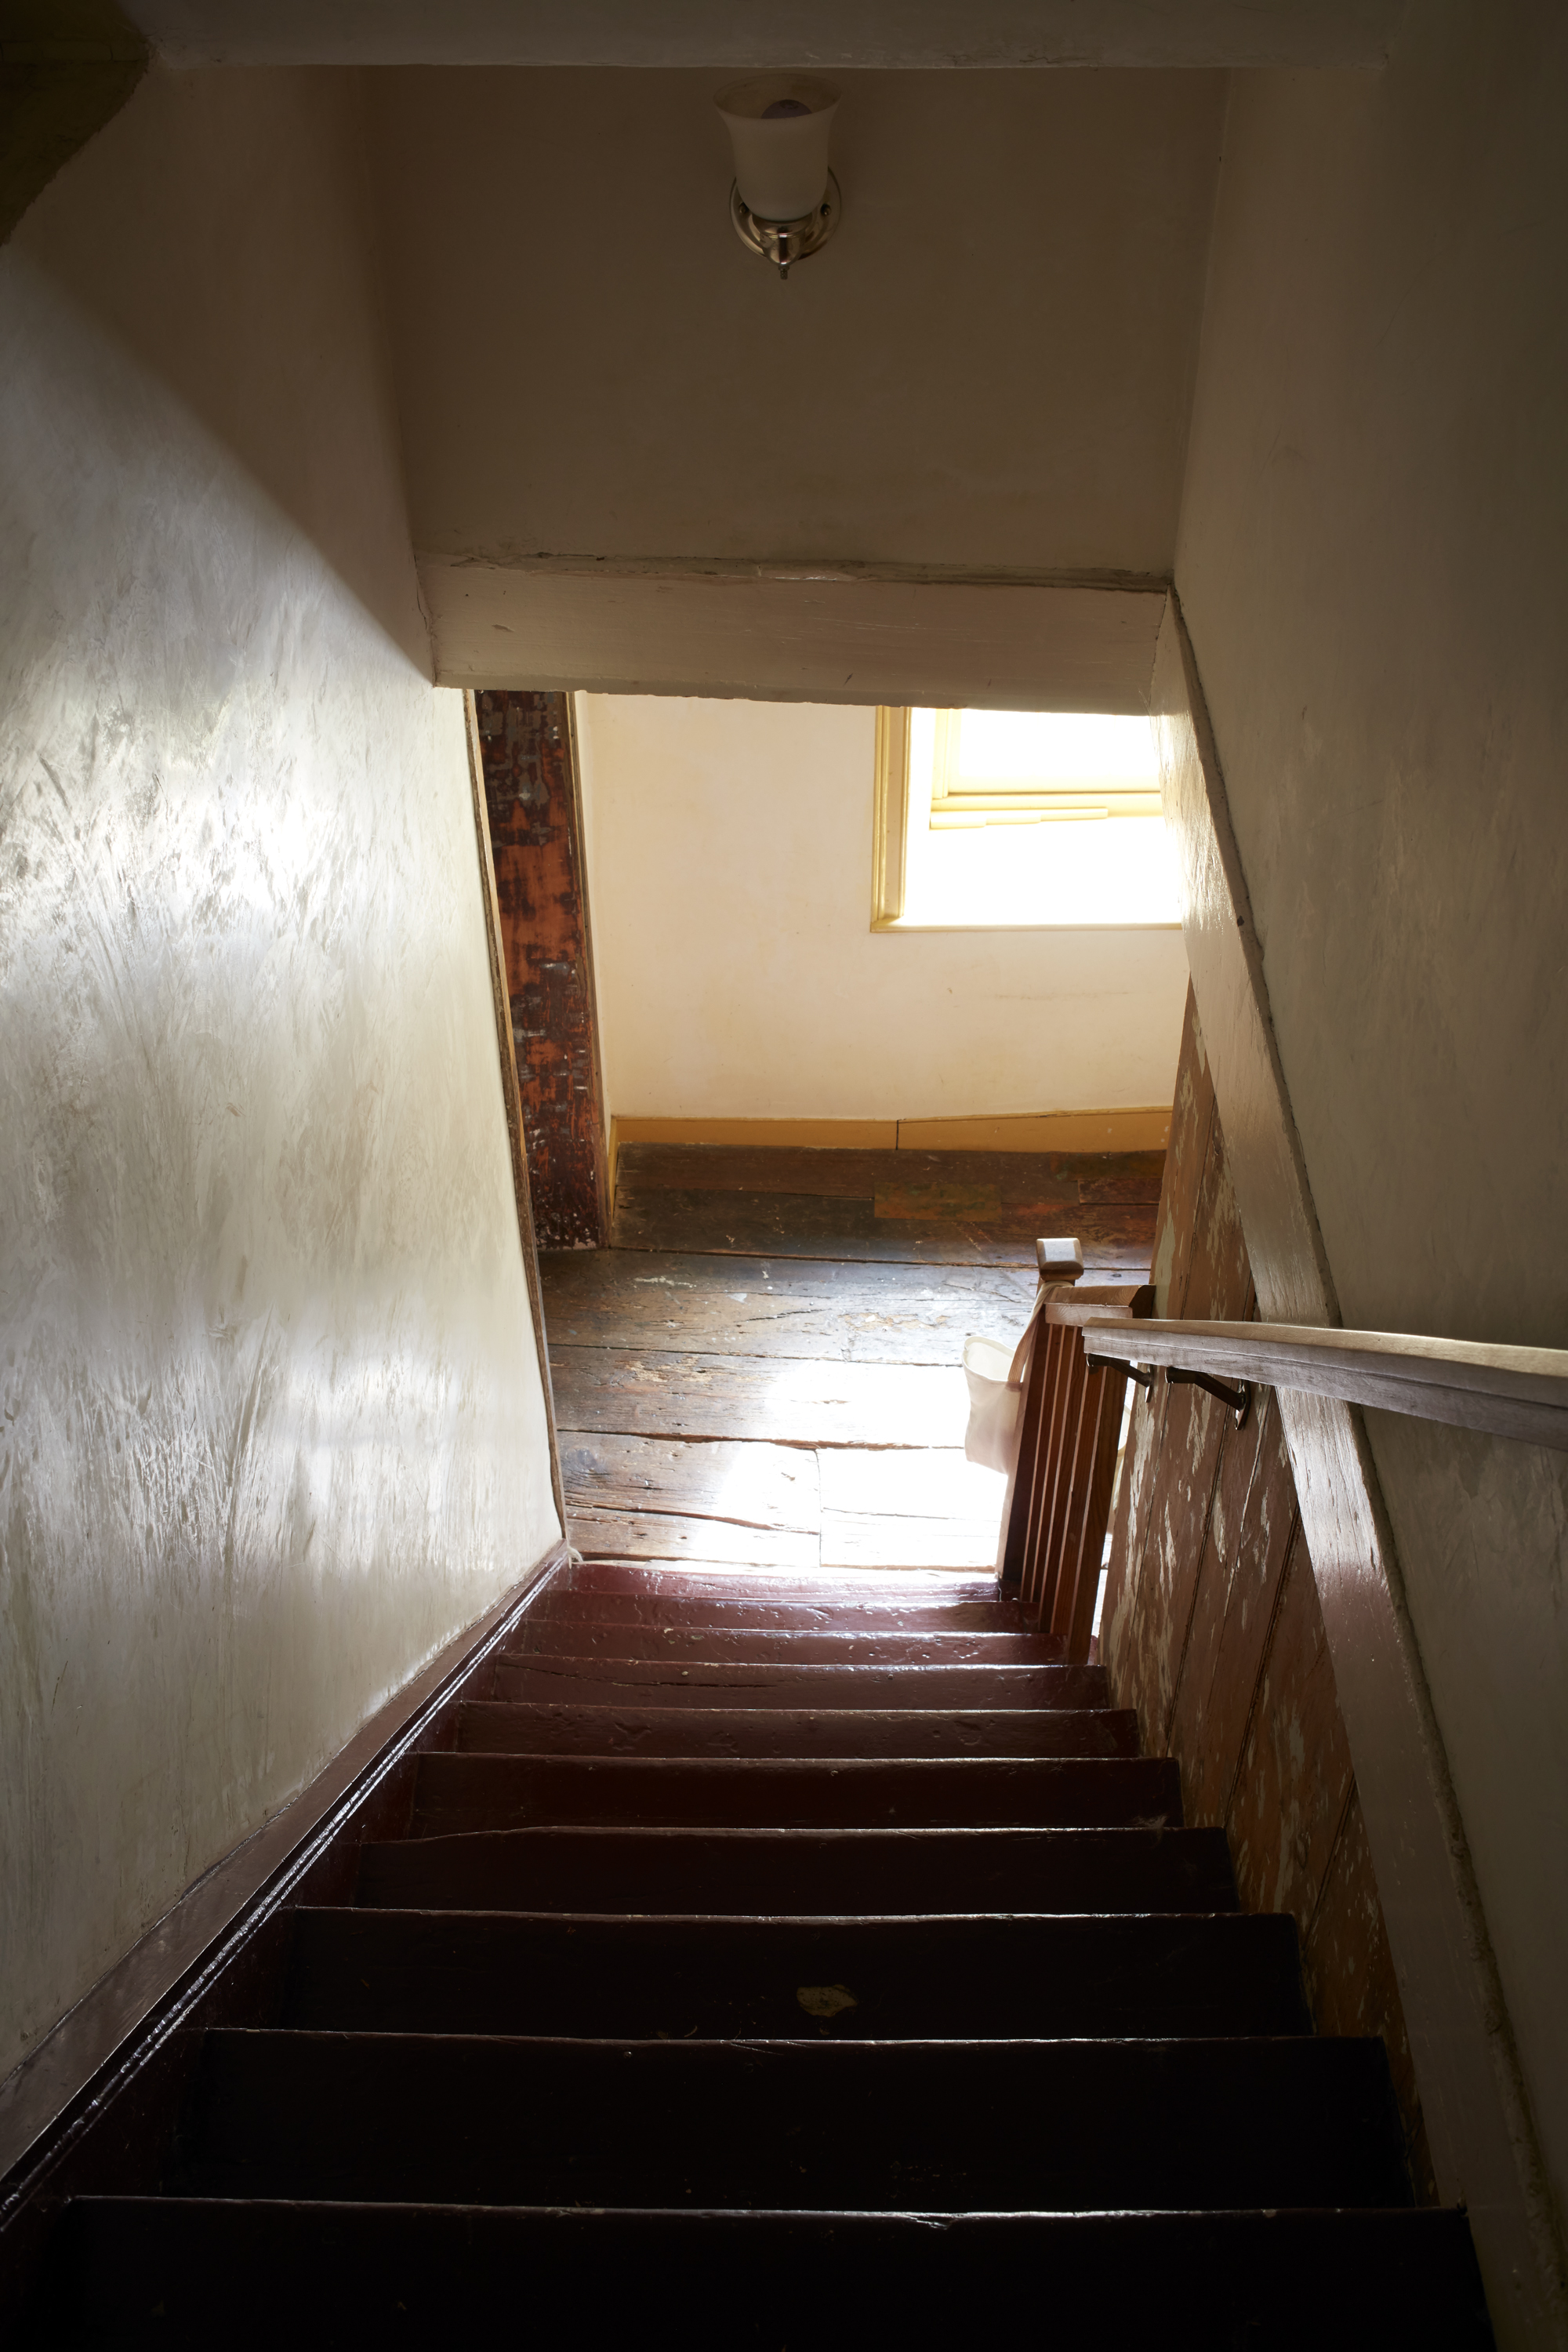 A shot that looks down a wooden stairway surrounded by white plaster walls.